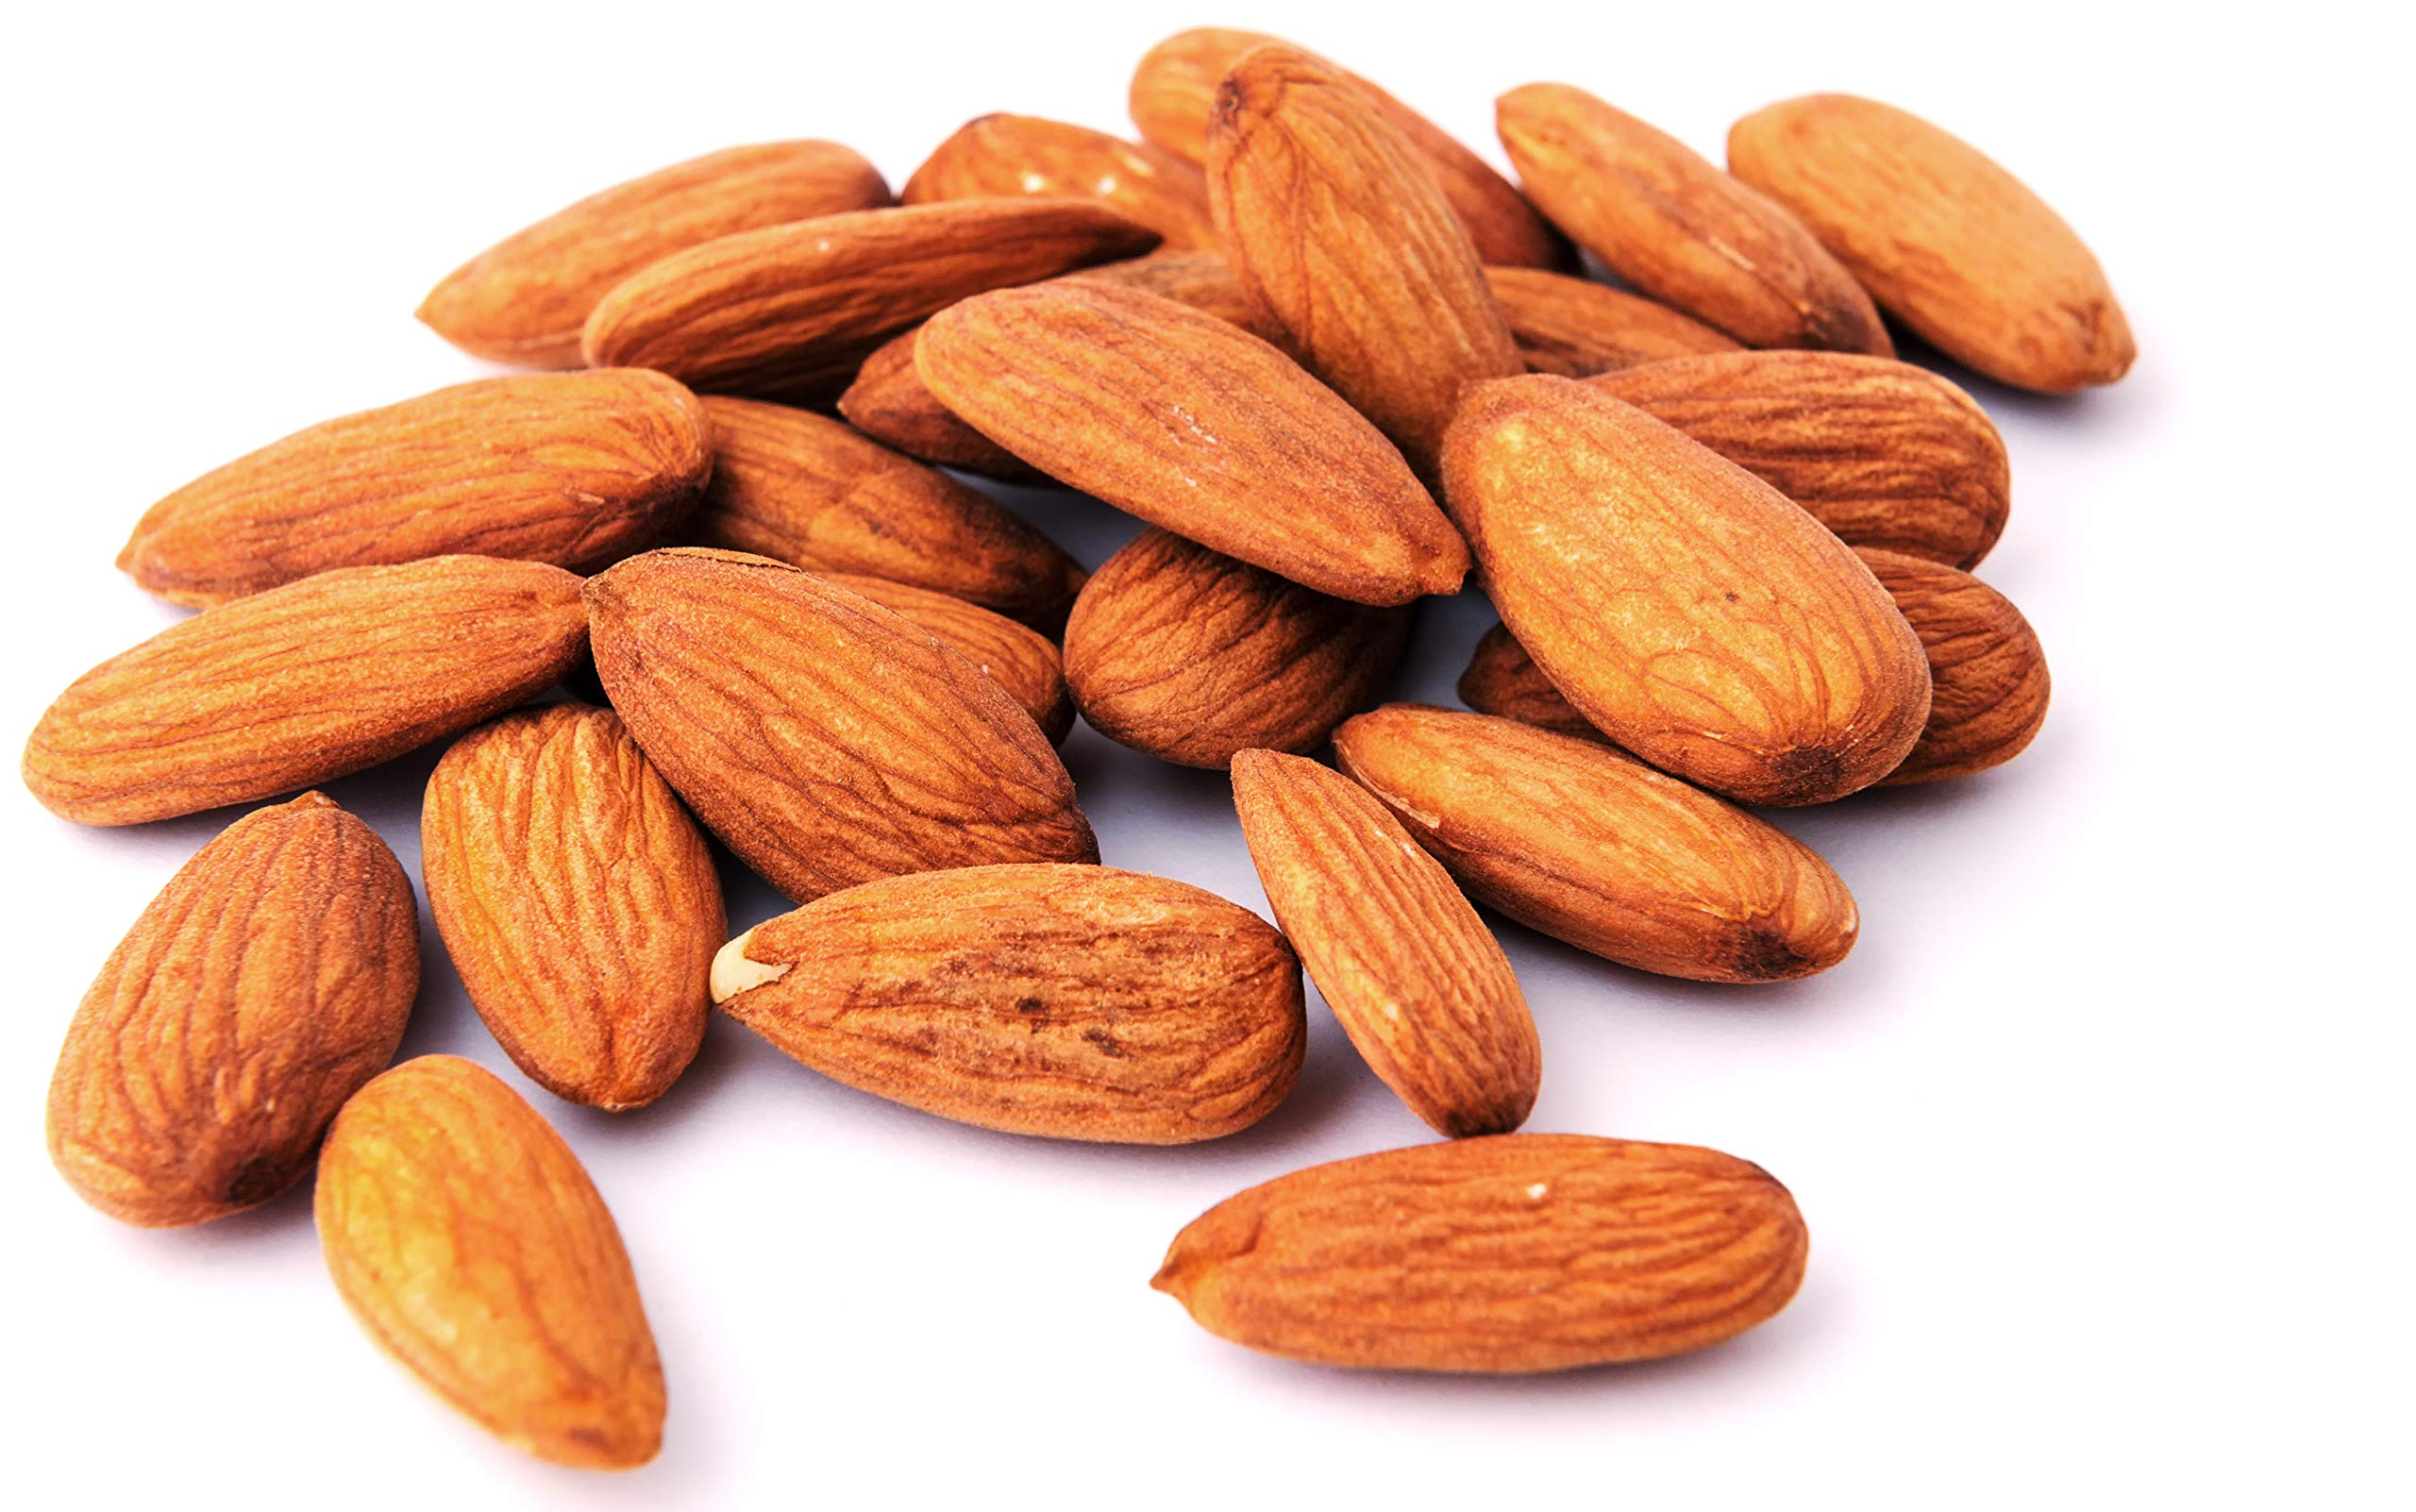 Almonds - Bulk Slivered Almonds Blanched 10 Pound Value Box - Freshest and highest quality nuts from US Based farmer market - Quality nuts for homes, restaurants, and bakeries. (10 LBS)